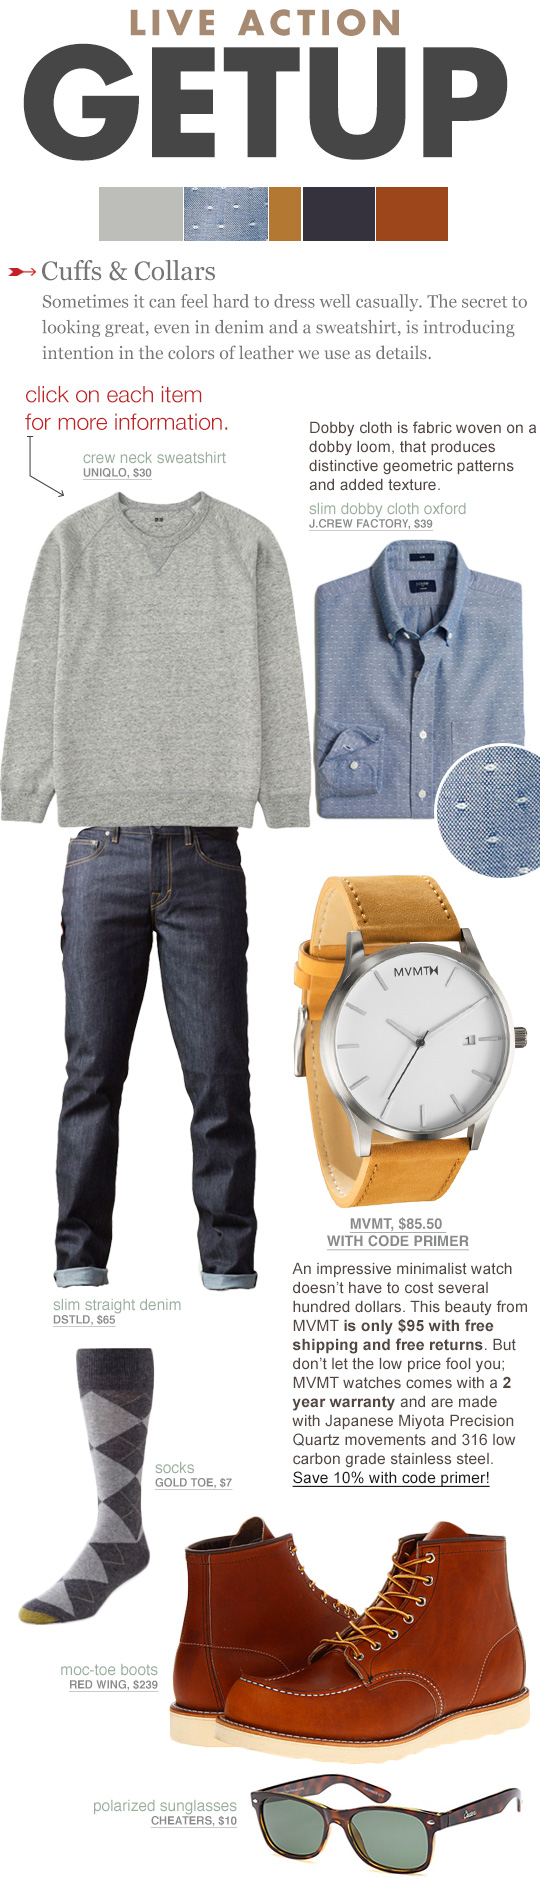 Getup outfit inspiration - gray sweatshirt, blue shirt, jeans, tan watch